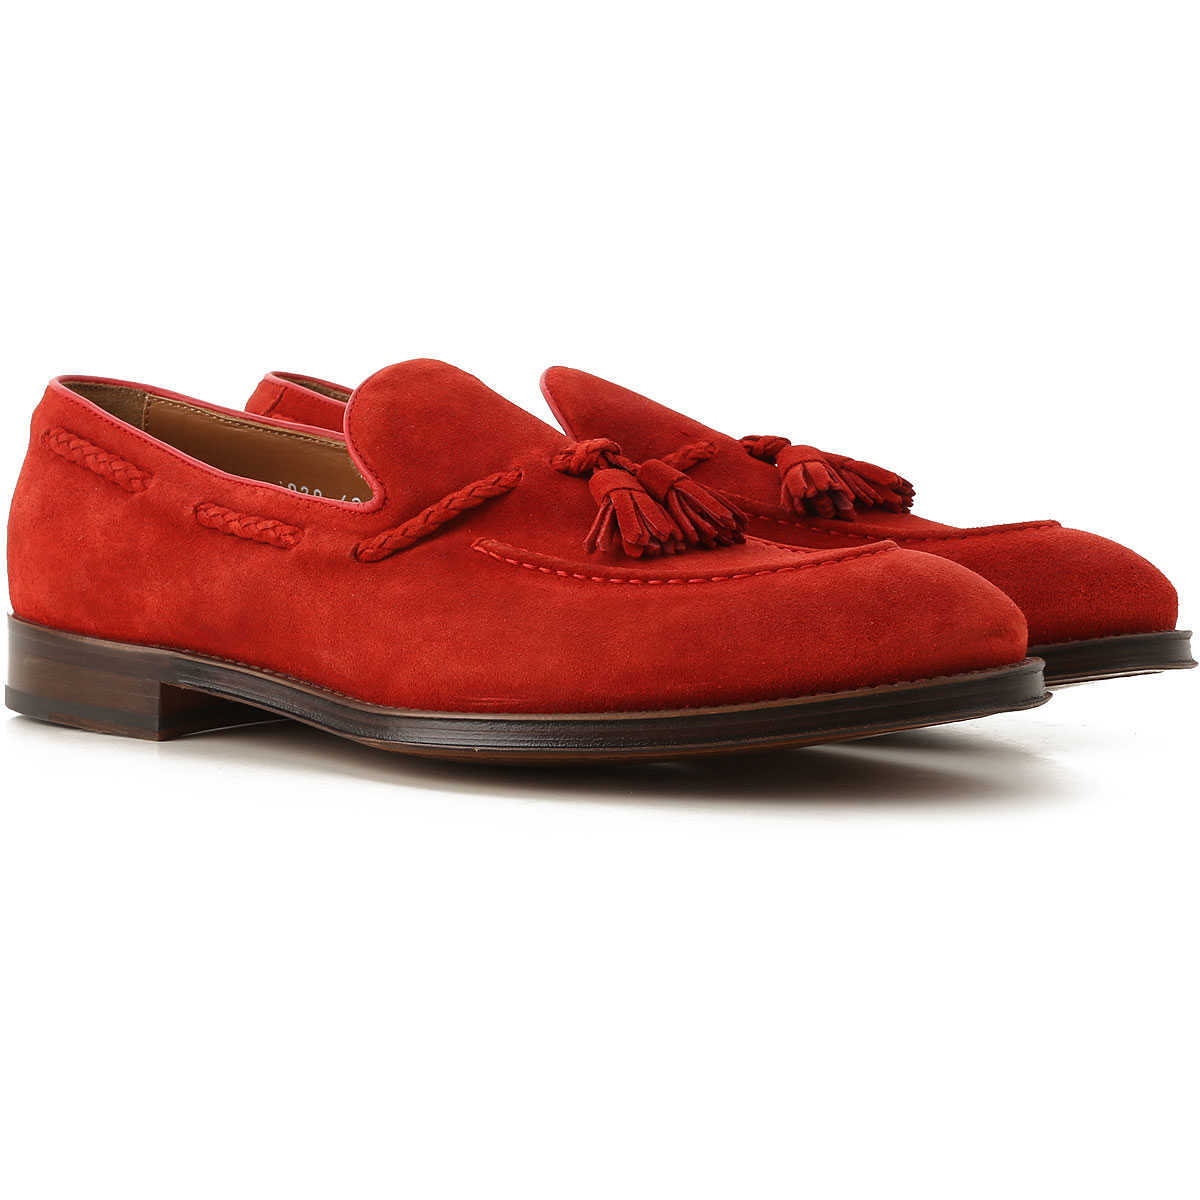 Doucals Loafers for Men